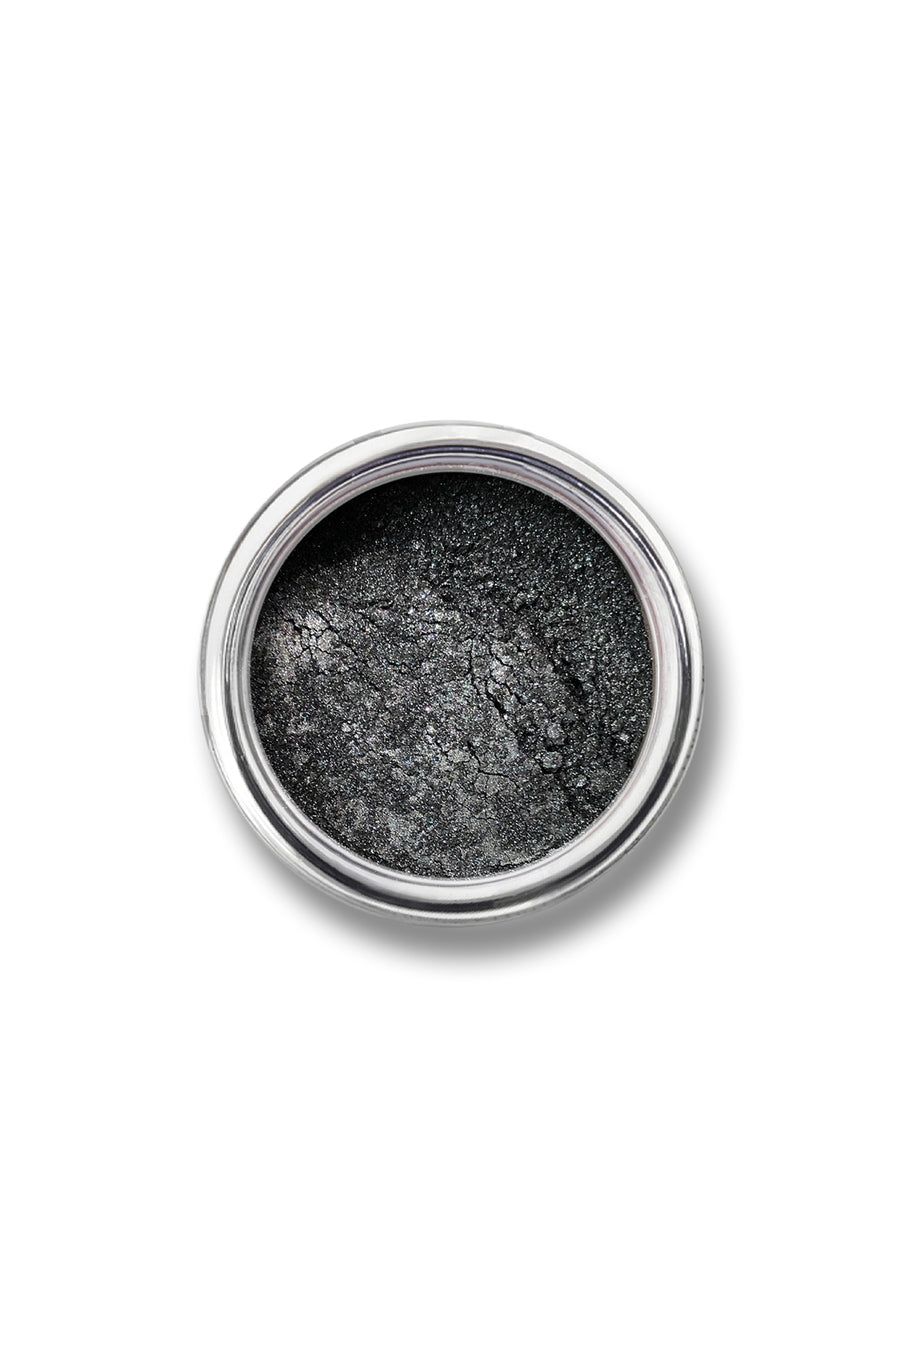 Shimmer Eyeshadow #49 - Charcoal - Blend Mineral Cosmetics